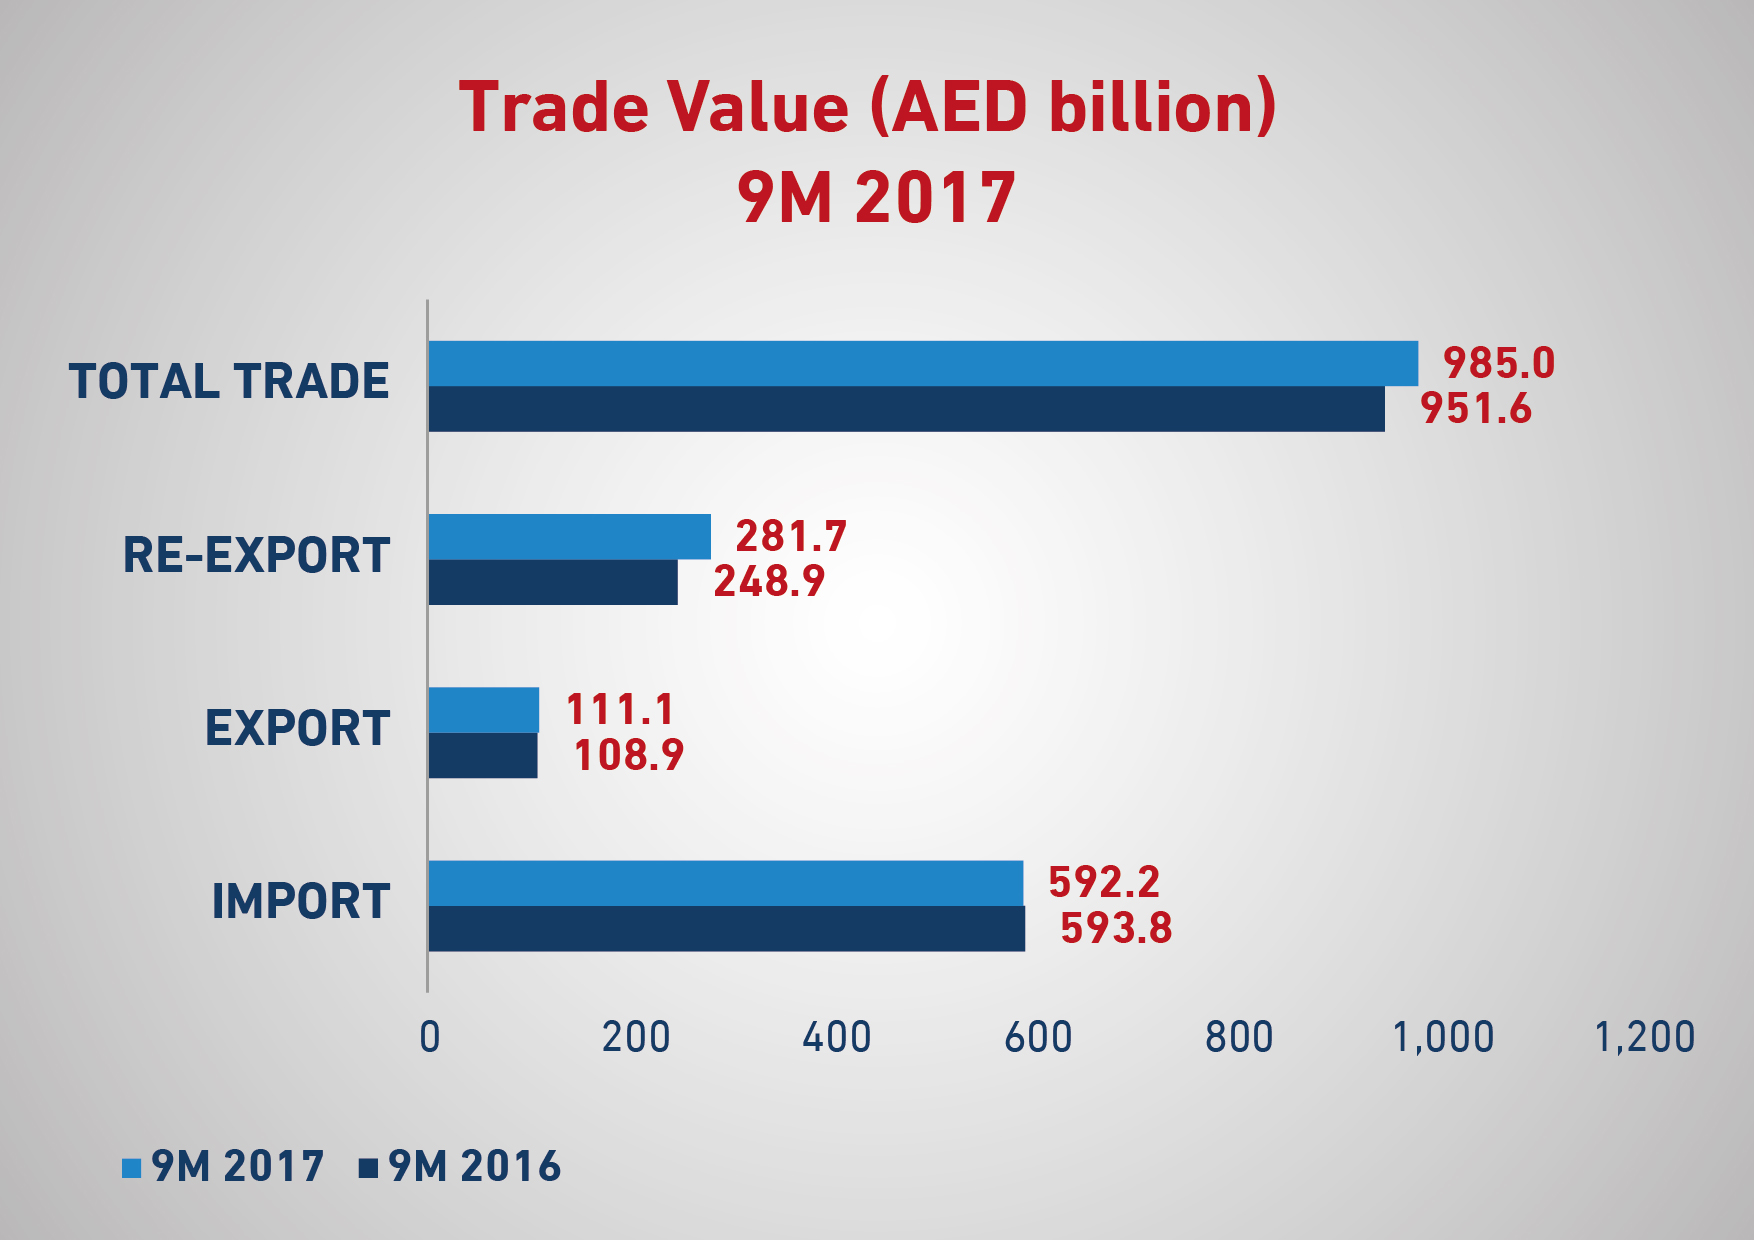 dubai non-oil foreign trade increases by 13% year-on-year in q3 2017 c